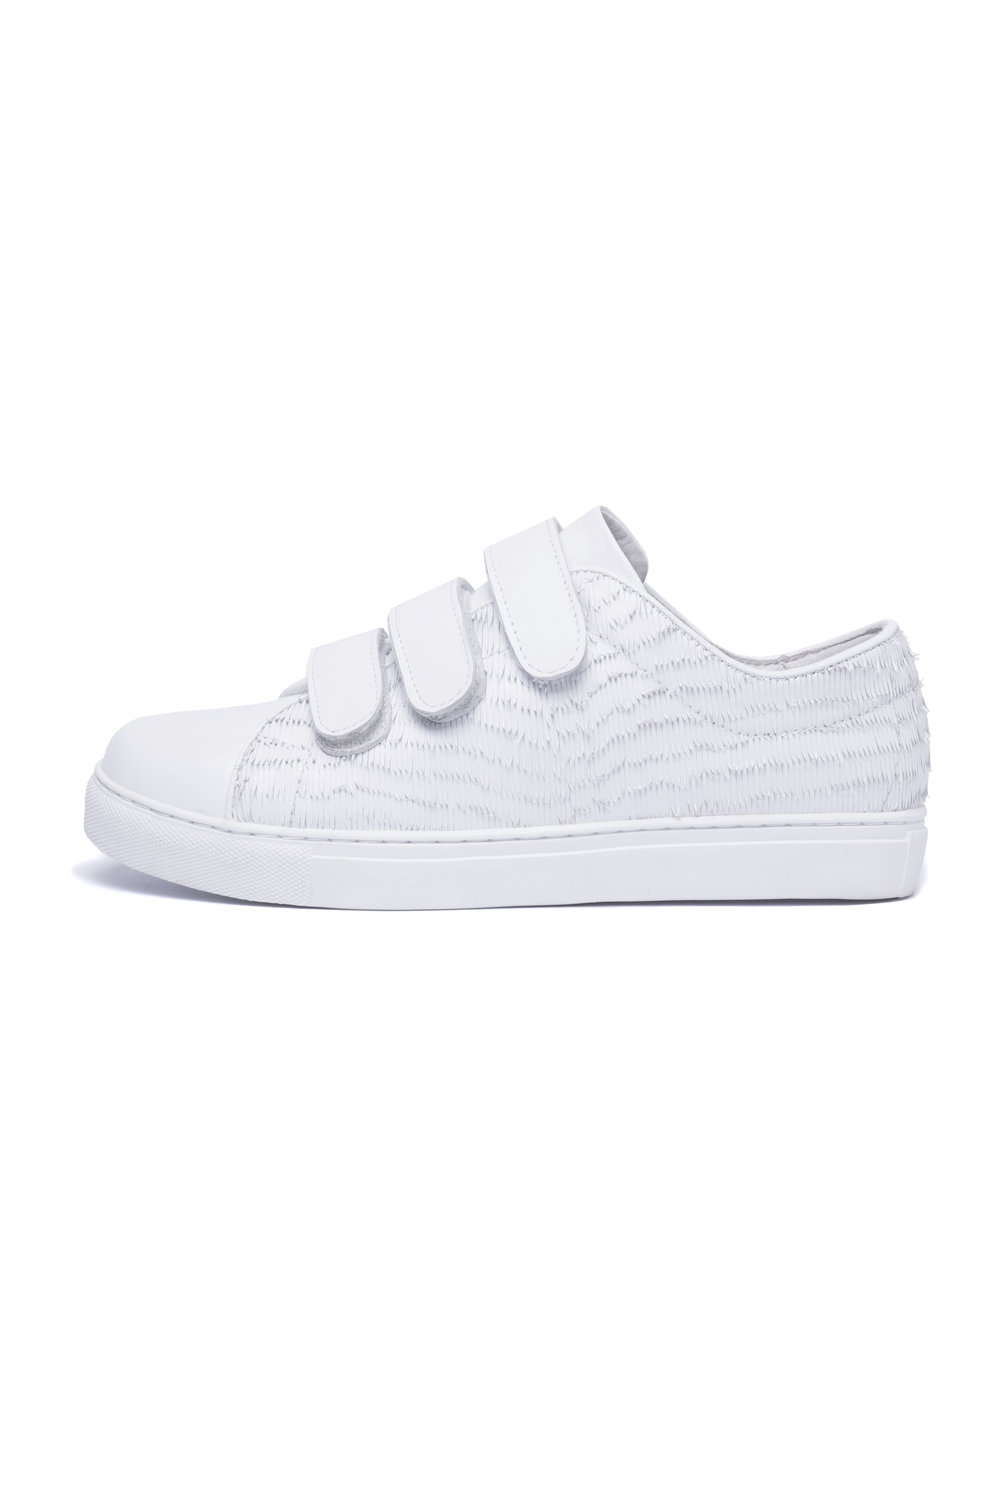 HELI Velcro Sneakers $305 - White sneakers are a favorite for a reason and prove the athleisure trend has no plans of slowing down. Grab the Heli leather sneakers to bring comfort to tailored 9-to-5 looks and off-duty days. These are the Velcro sneakers you shouldn't be ashamed to wear!